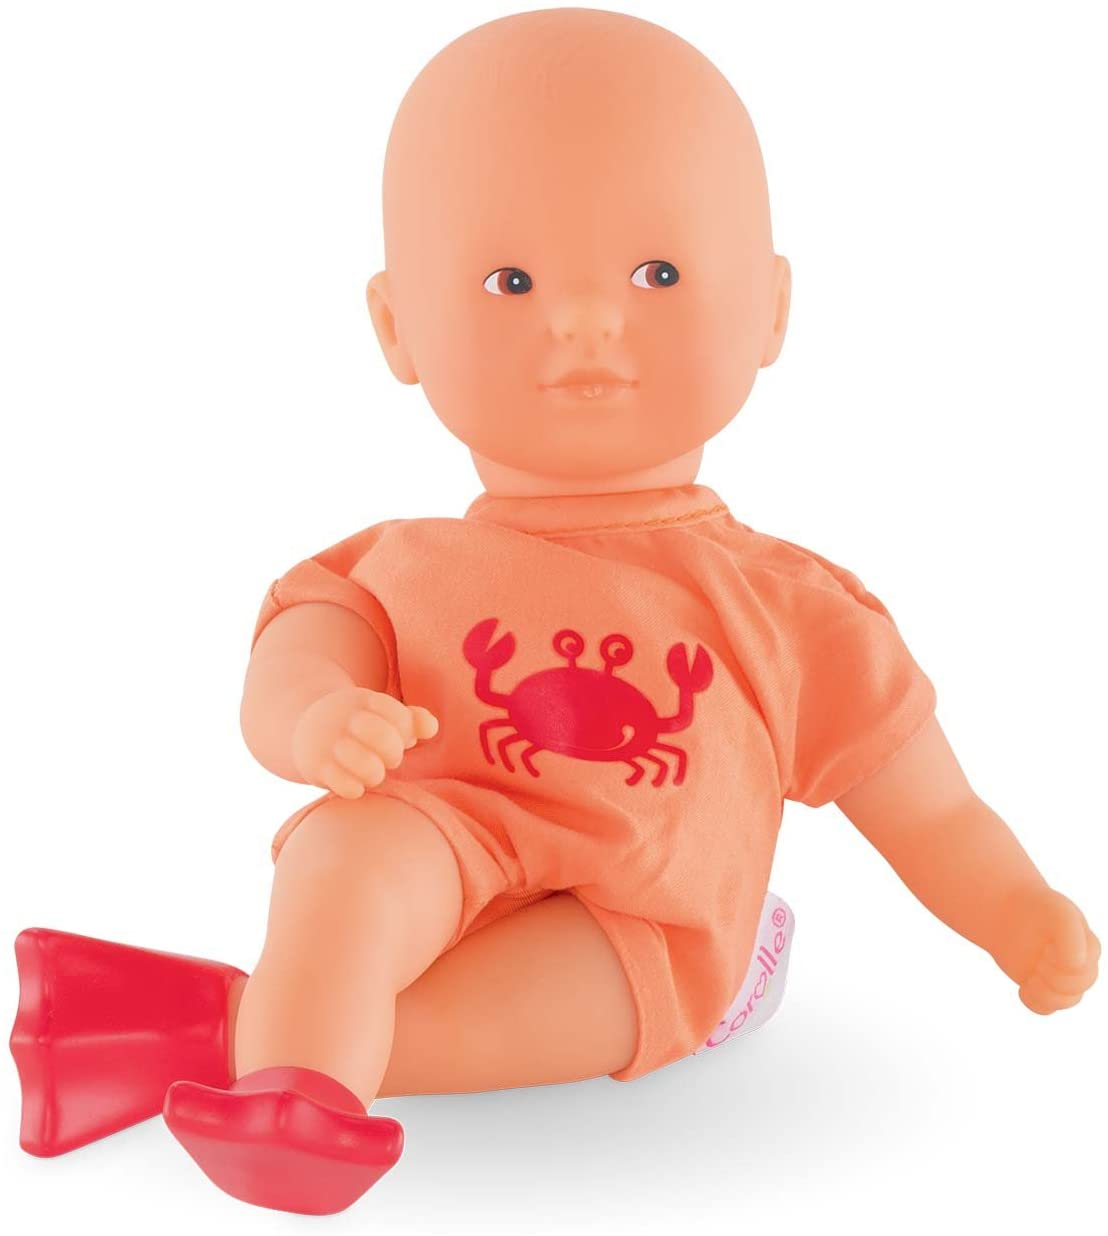 Corolle Mon Premier Poupon Mini Bath Orange Toy Baby Doll